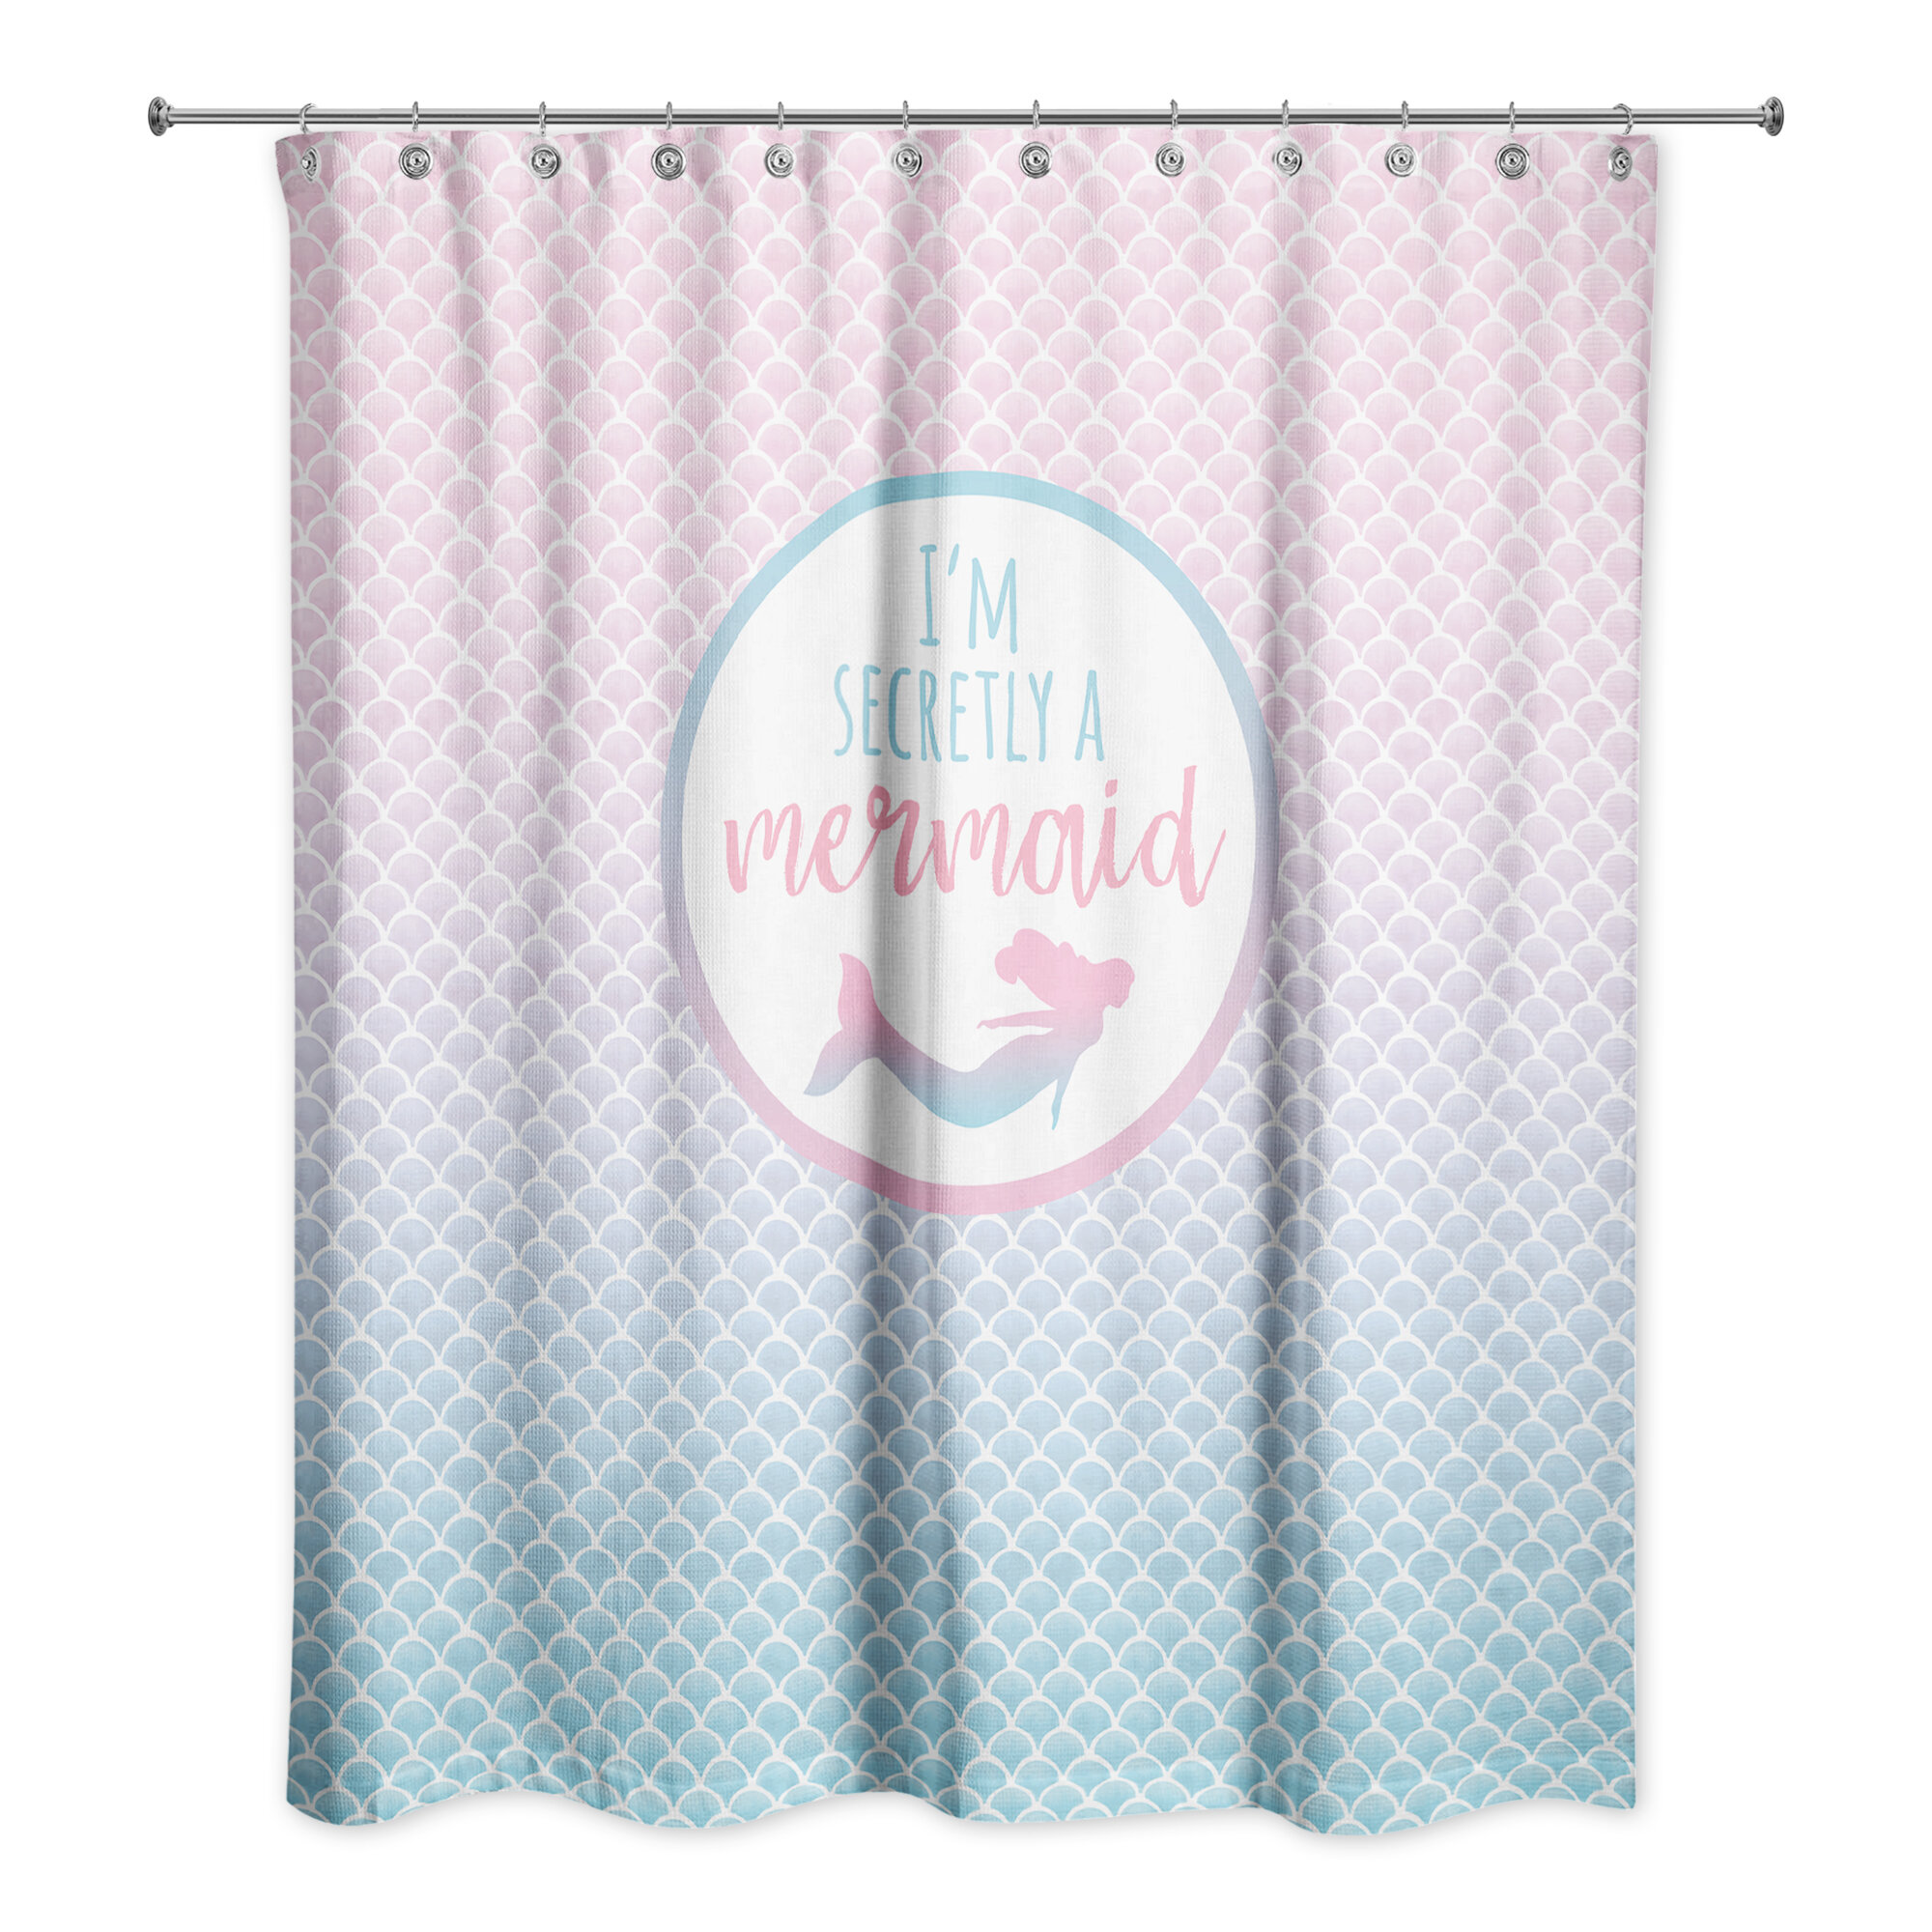 walmart homes of amazing curtains fabric curtain better gray gardens gratograt coolest waffle awesome photos stripe shower and